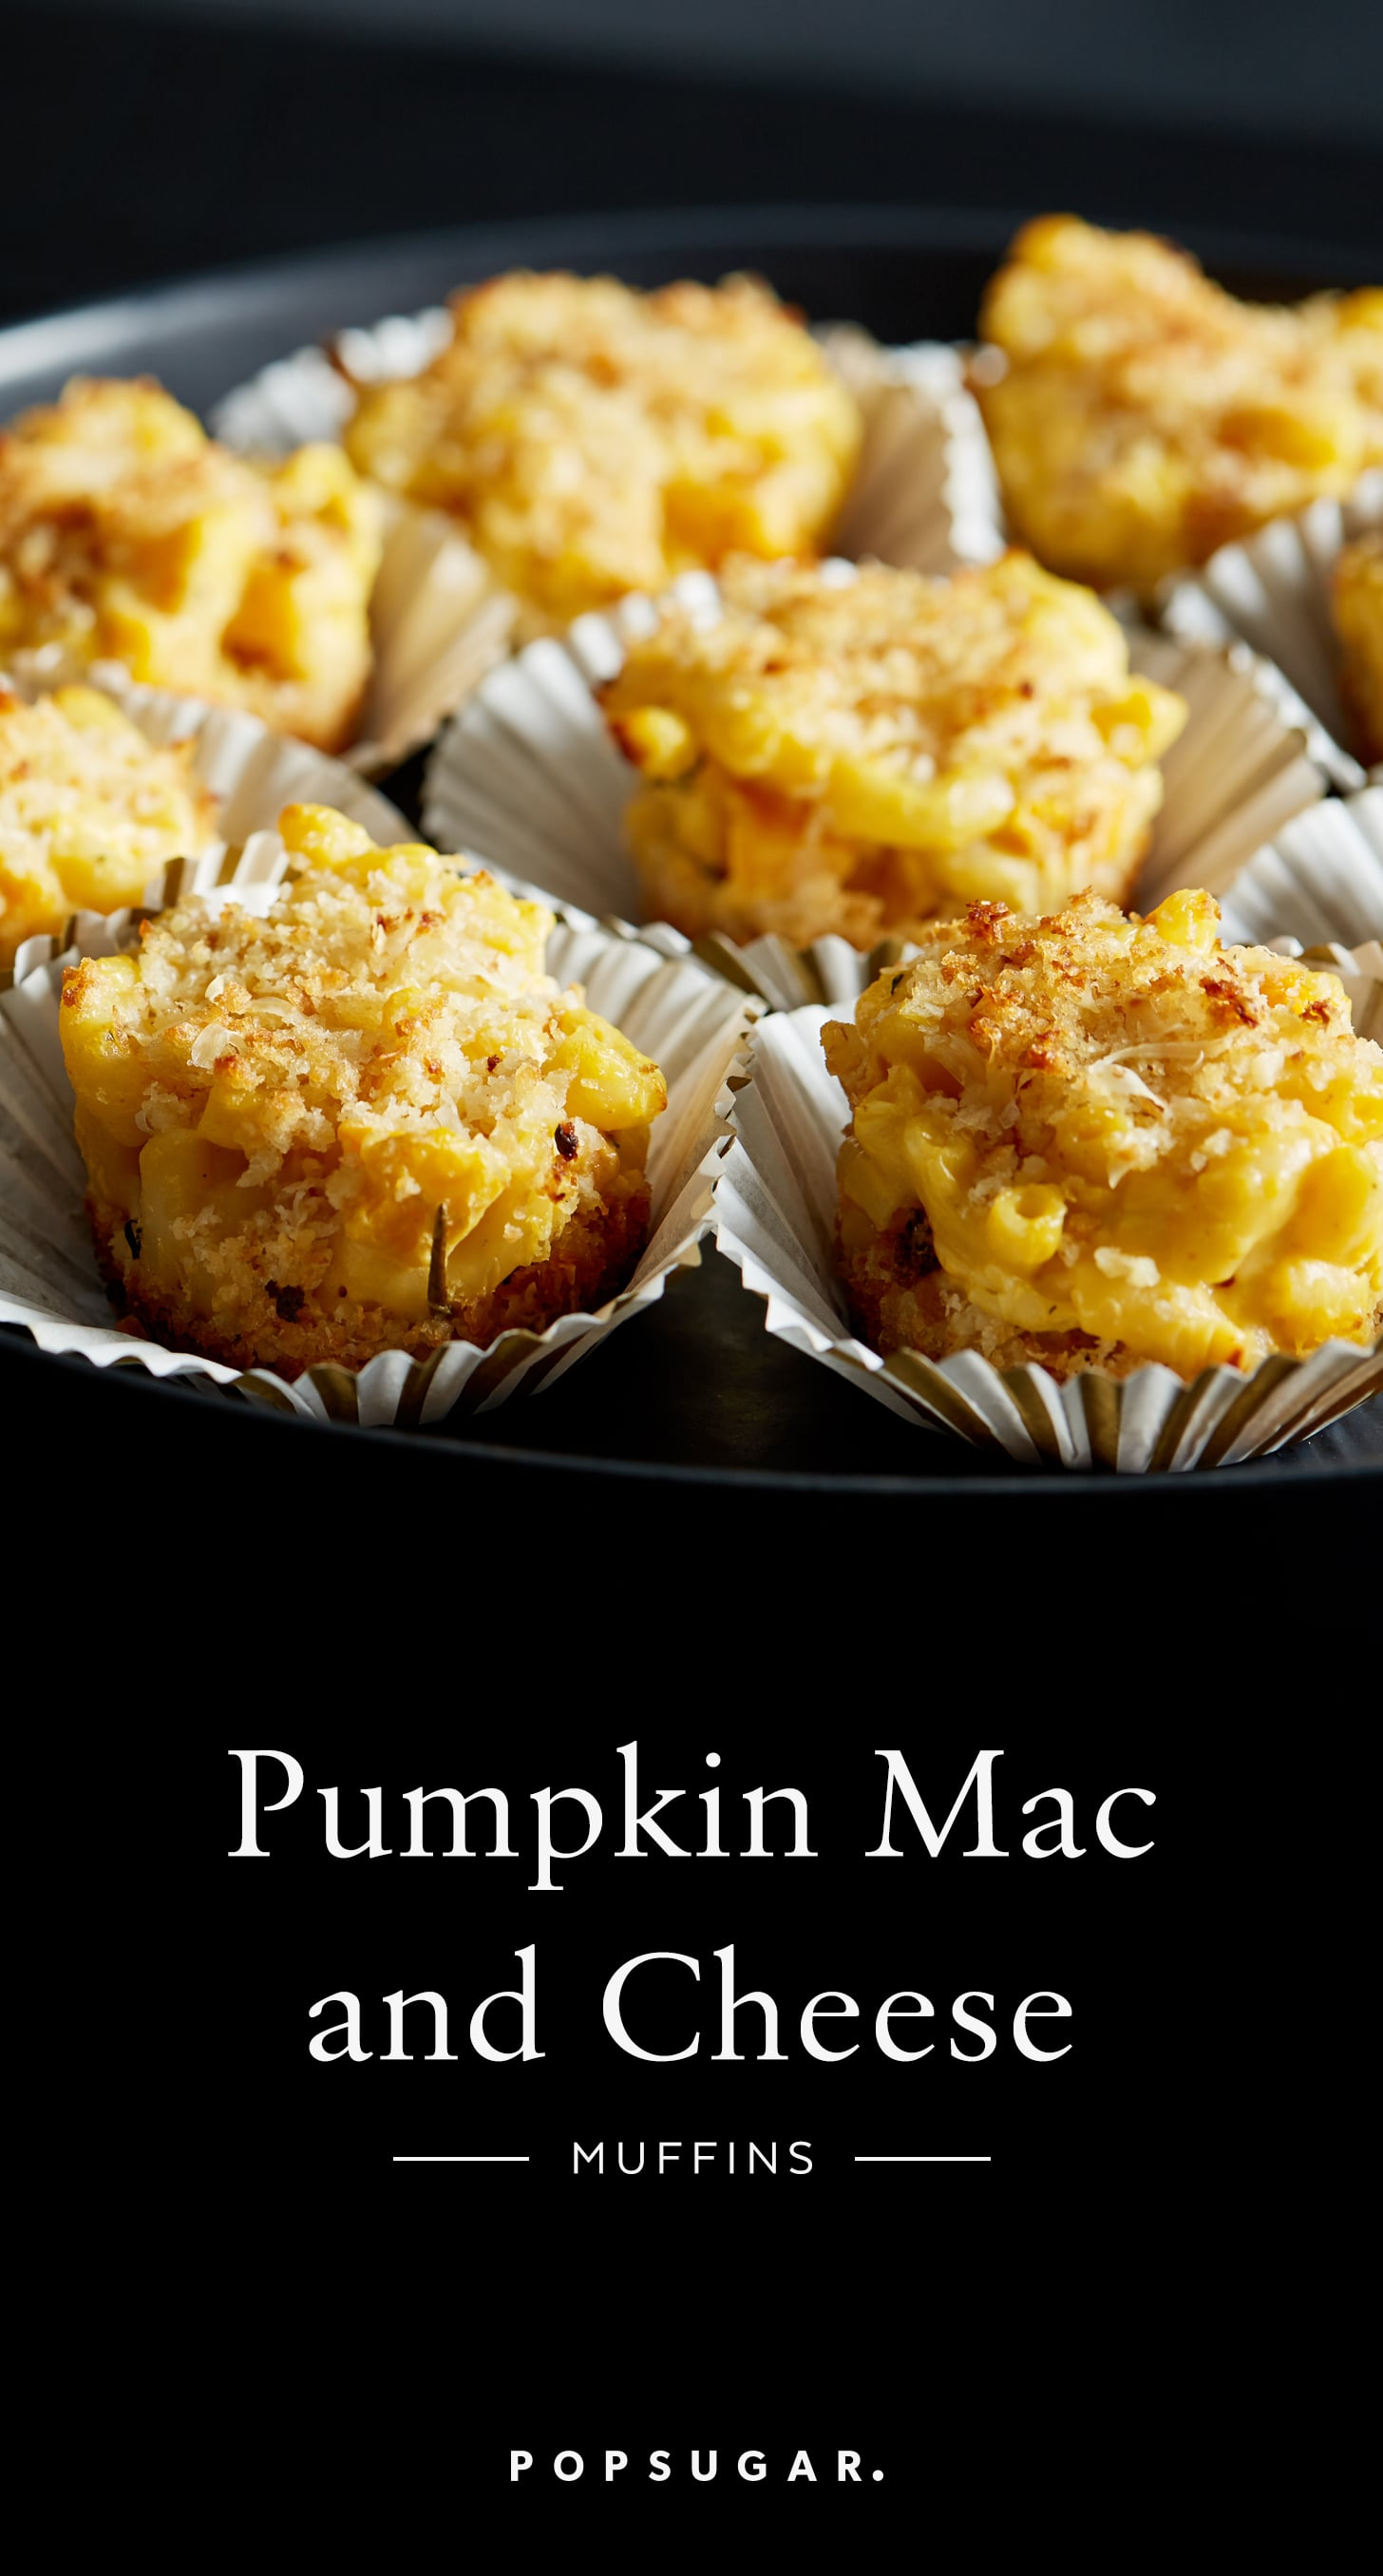 Pumpkin Macaroni and Cheese Muffins | POPSUGAR Food